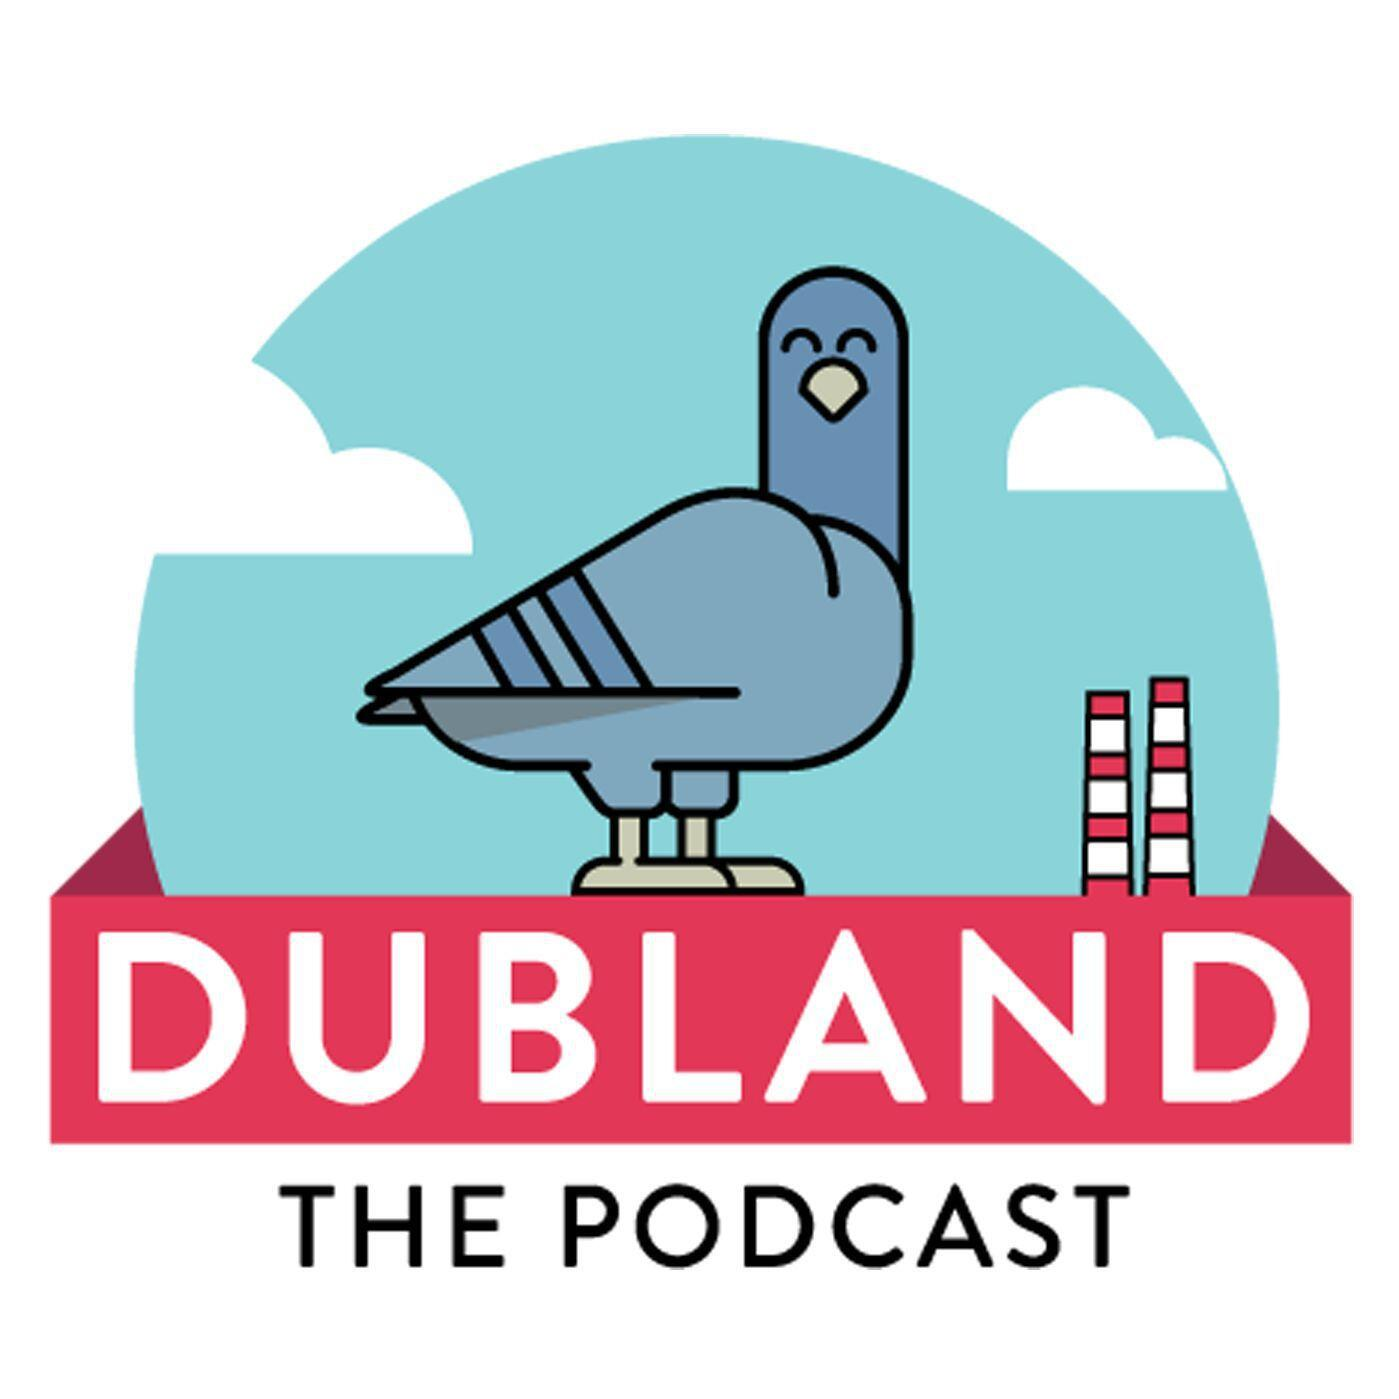 72 DUBLAND The Podcast